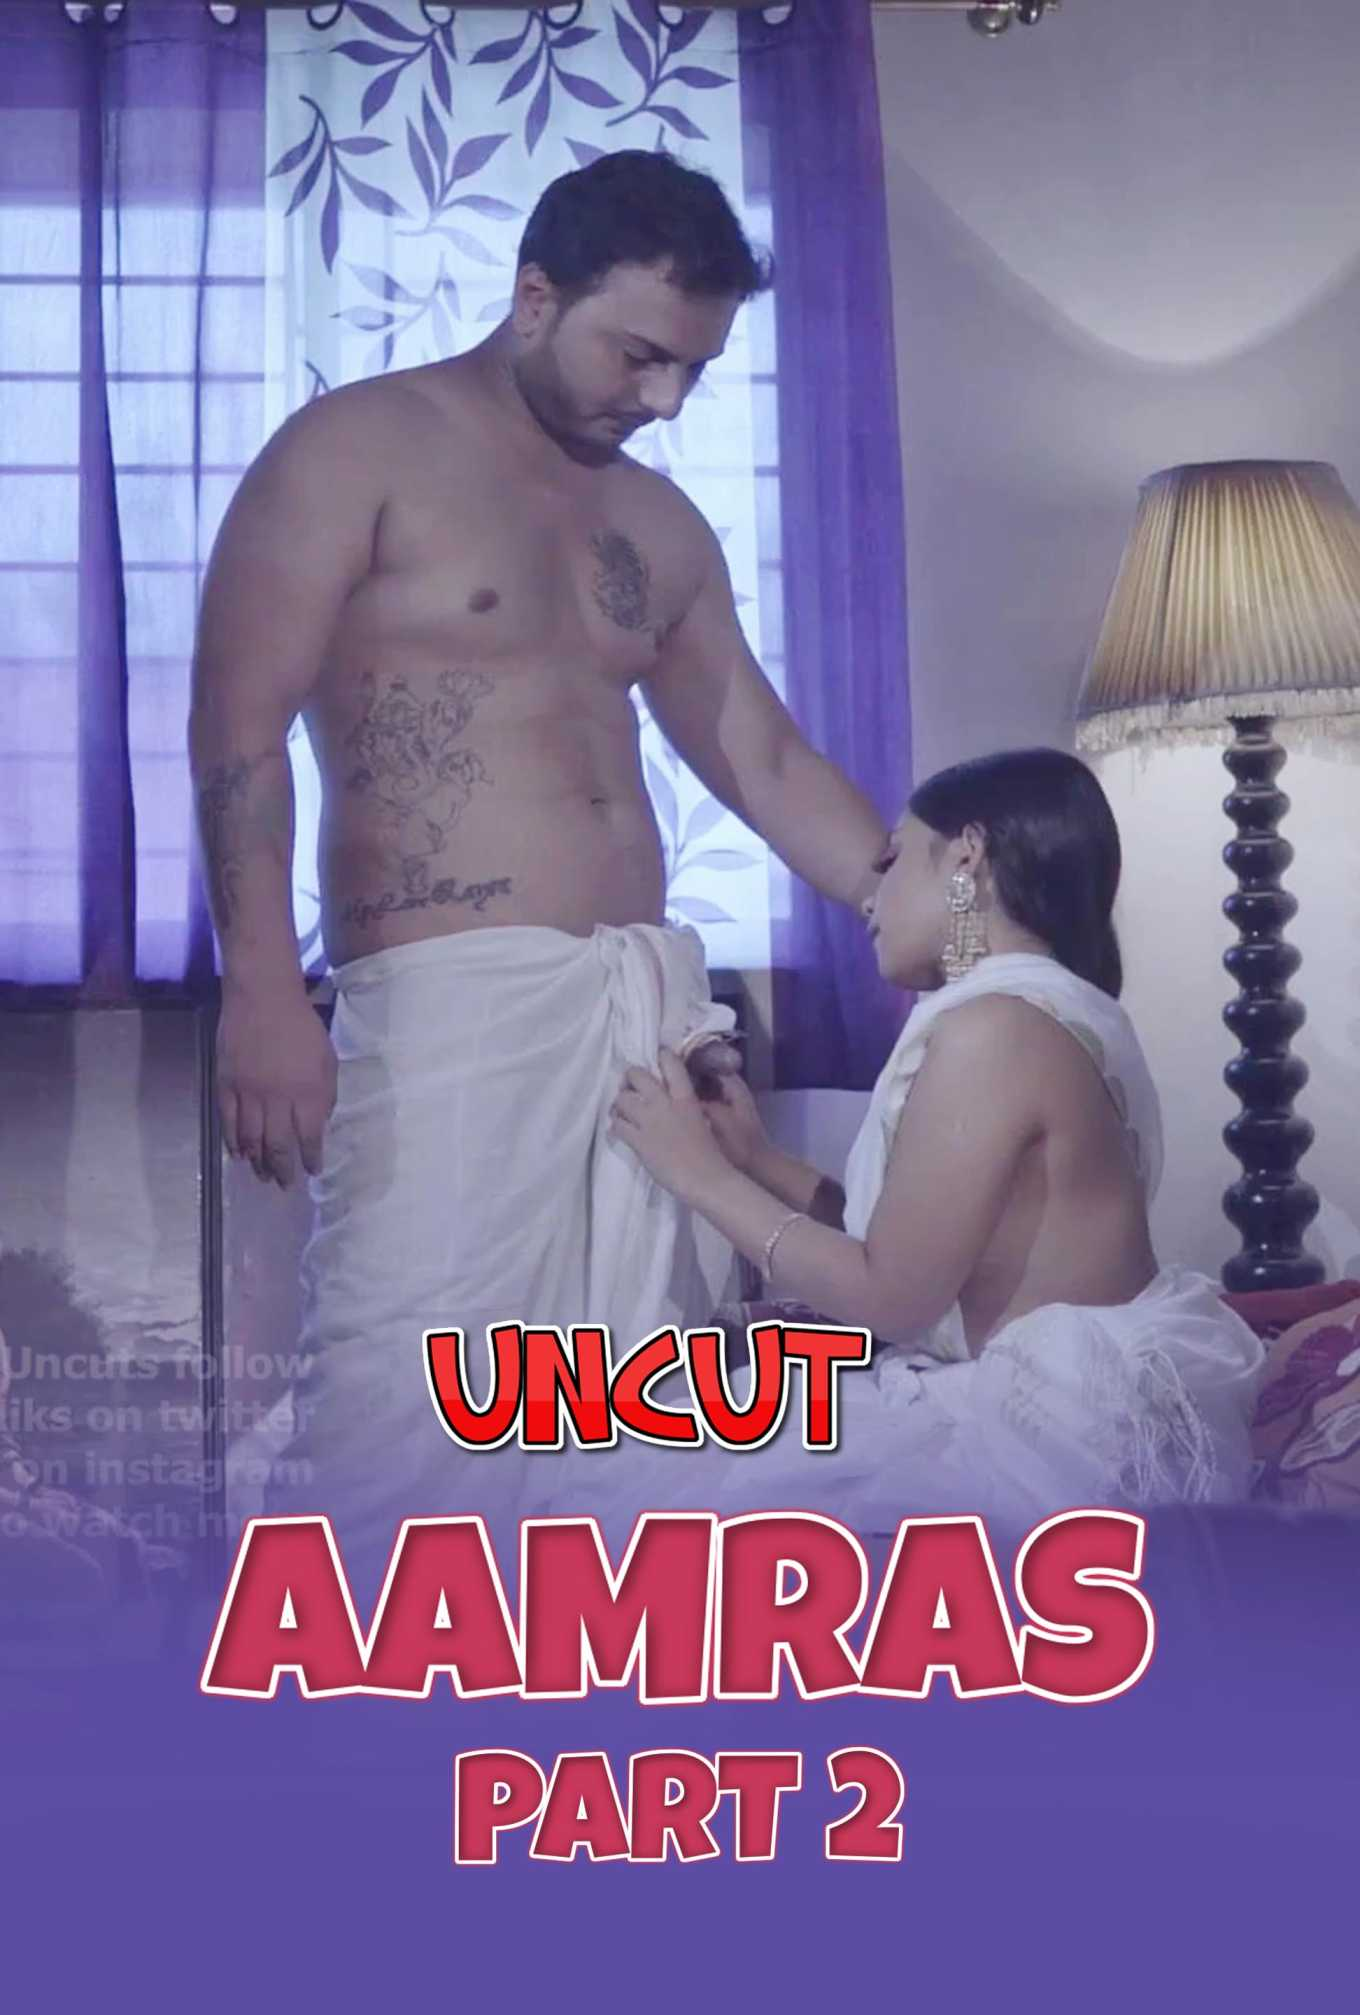 Aaamras Part 2 2020 Nuefliks Hindi Uncut Short Film 720p HDRip 200MB Download & Watch Online